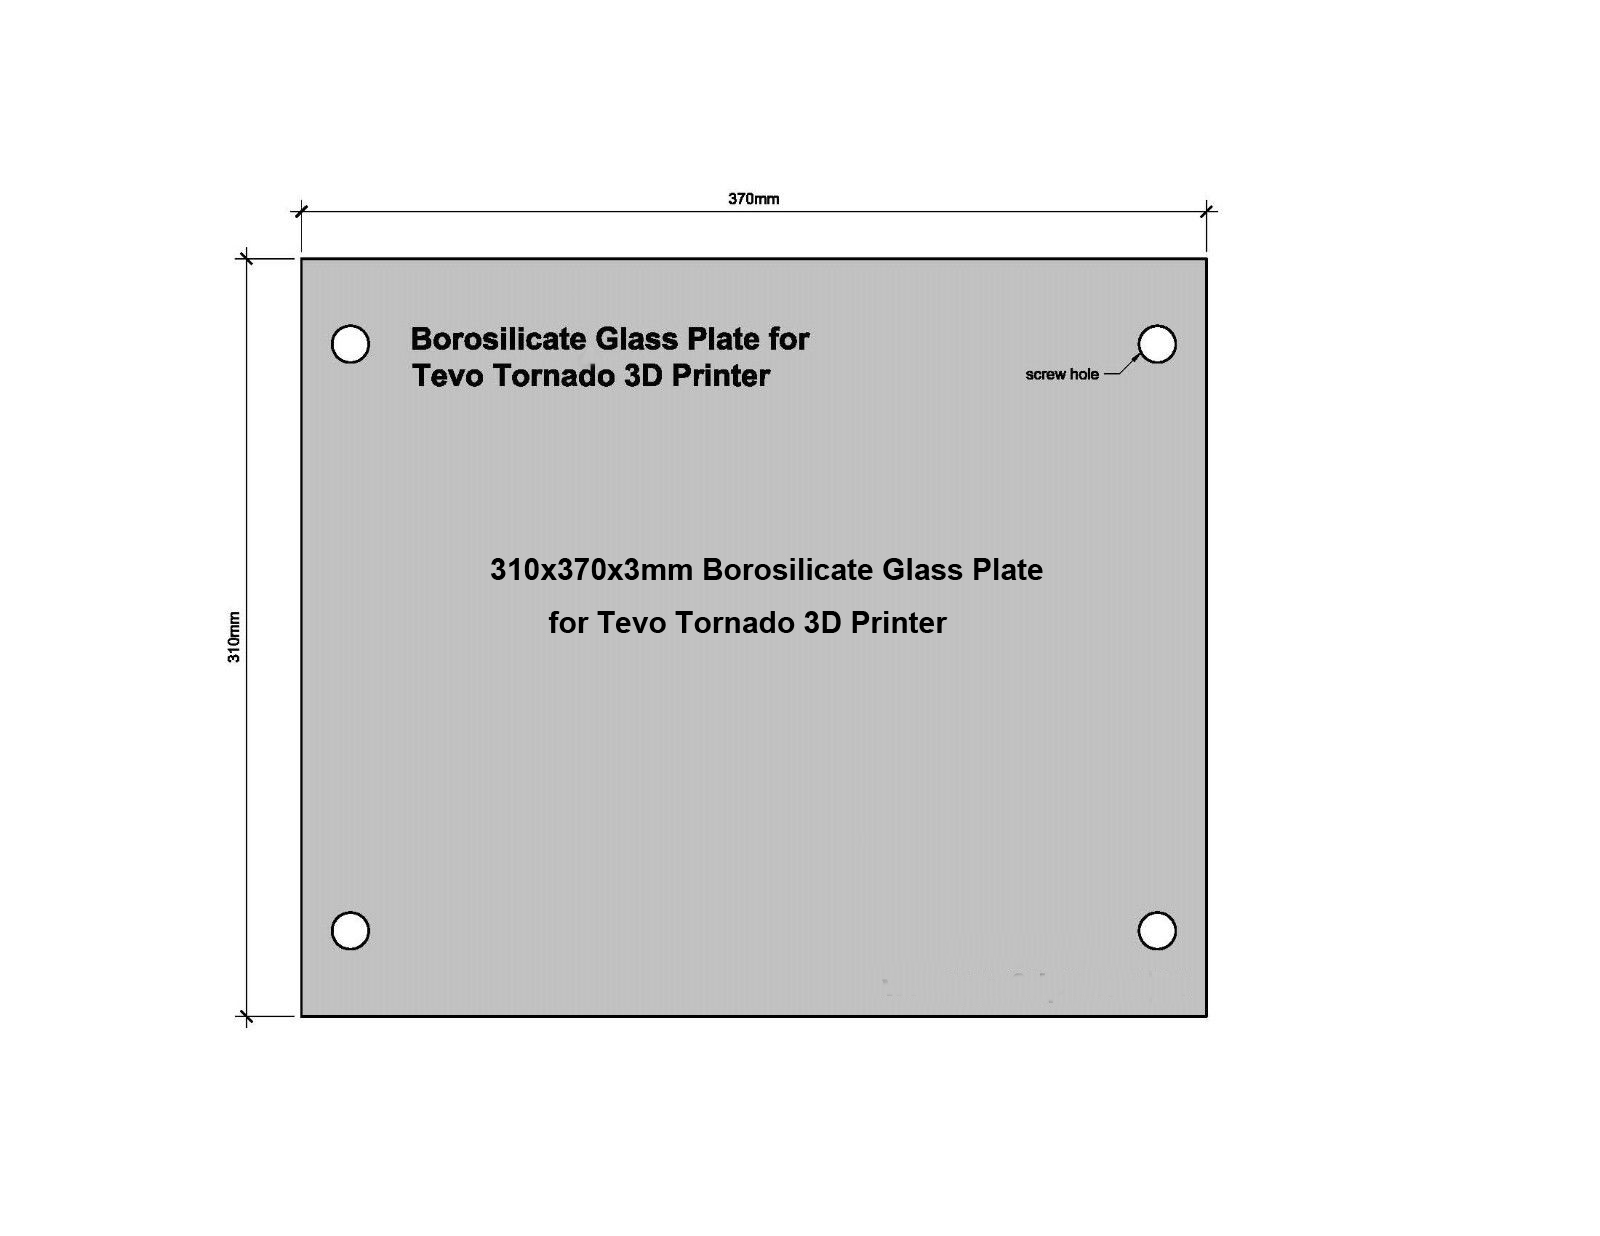 310mm X 370 X 3mm Borosilicate Glass Plate/Bed With Screw Holes For Tevo Tornado 3D Printer (310 X 370 X 3mm)